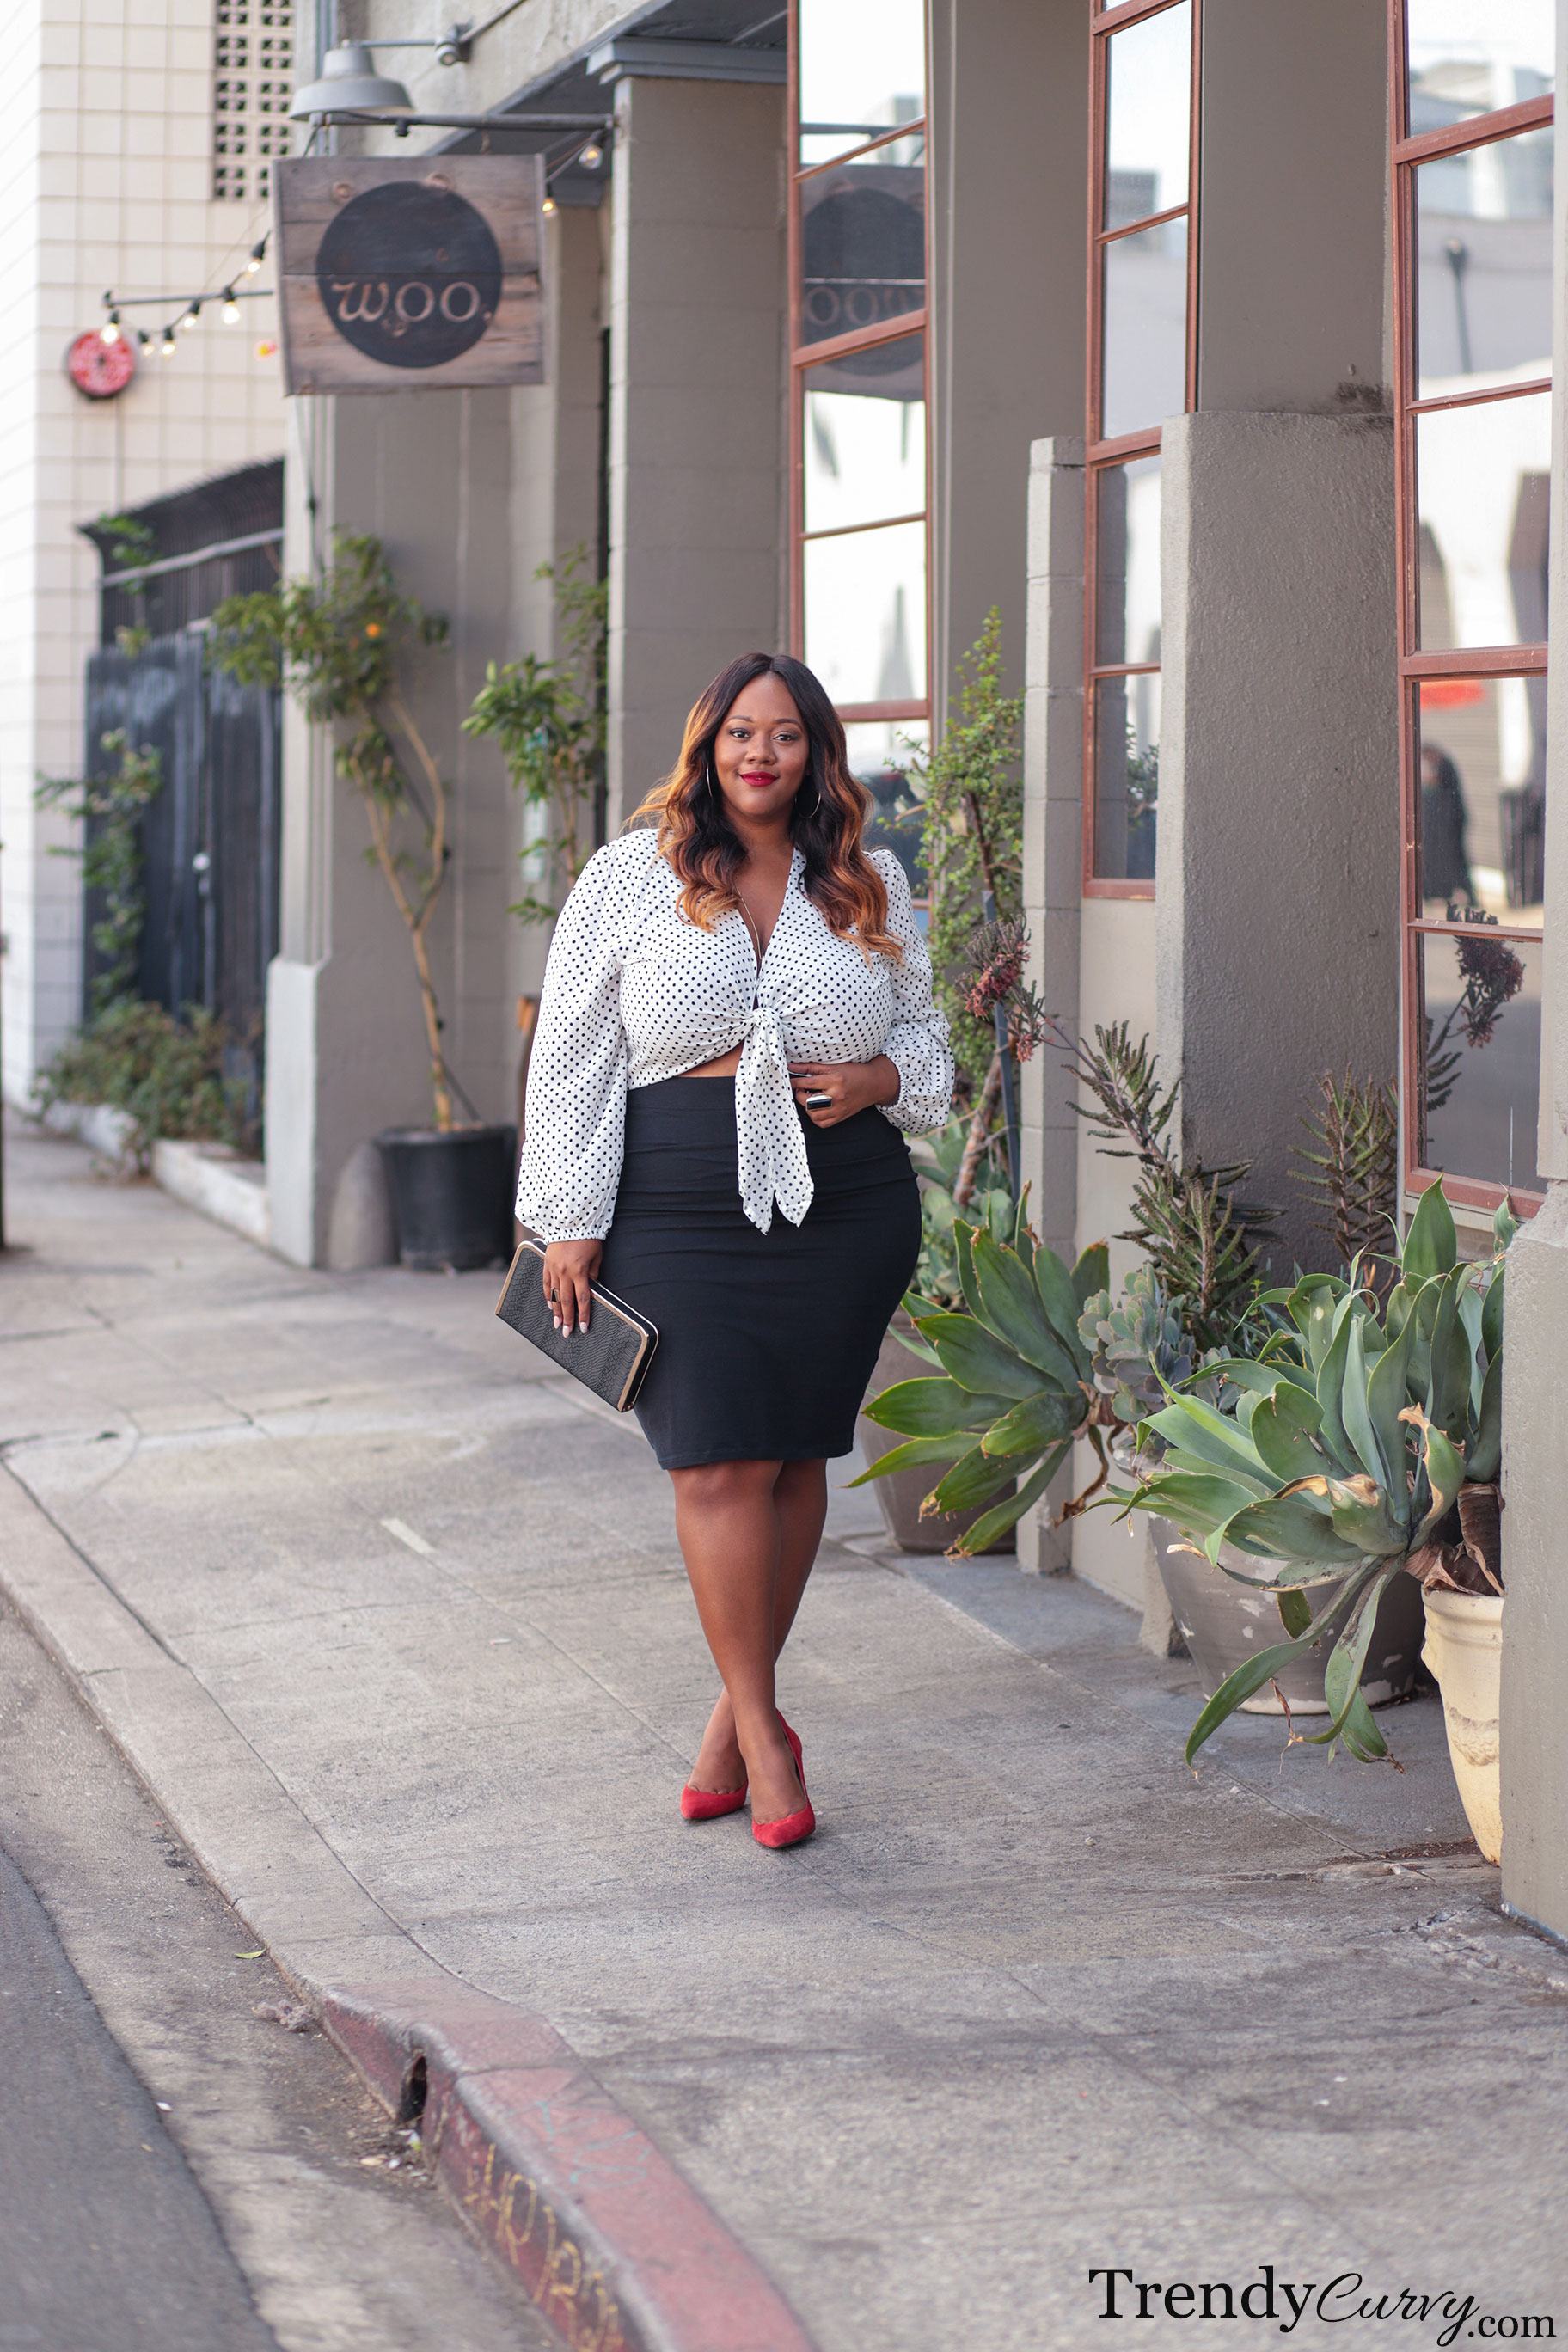 bf32768e693 Trendy Curvy - Page 14 of 110 - Plus Size Fashion BlogTrendy Curvy